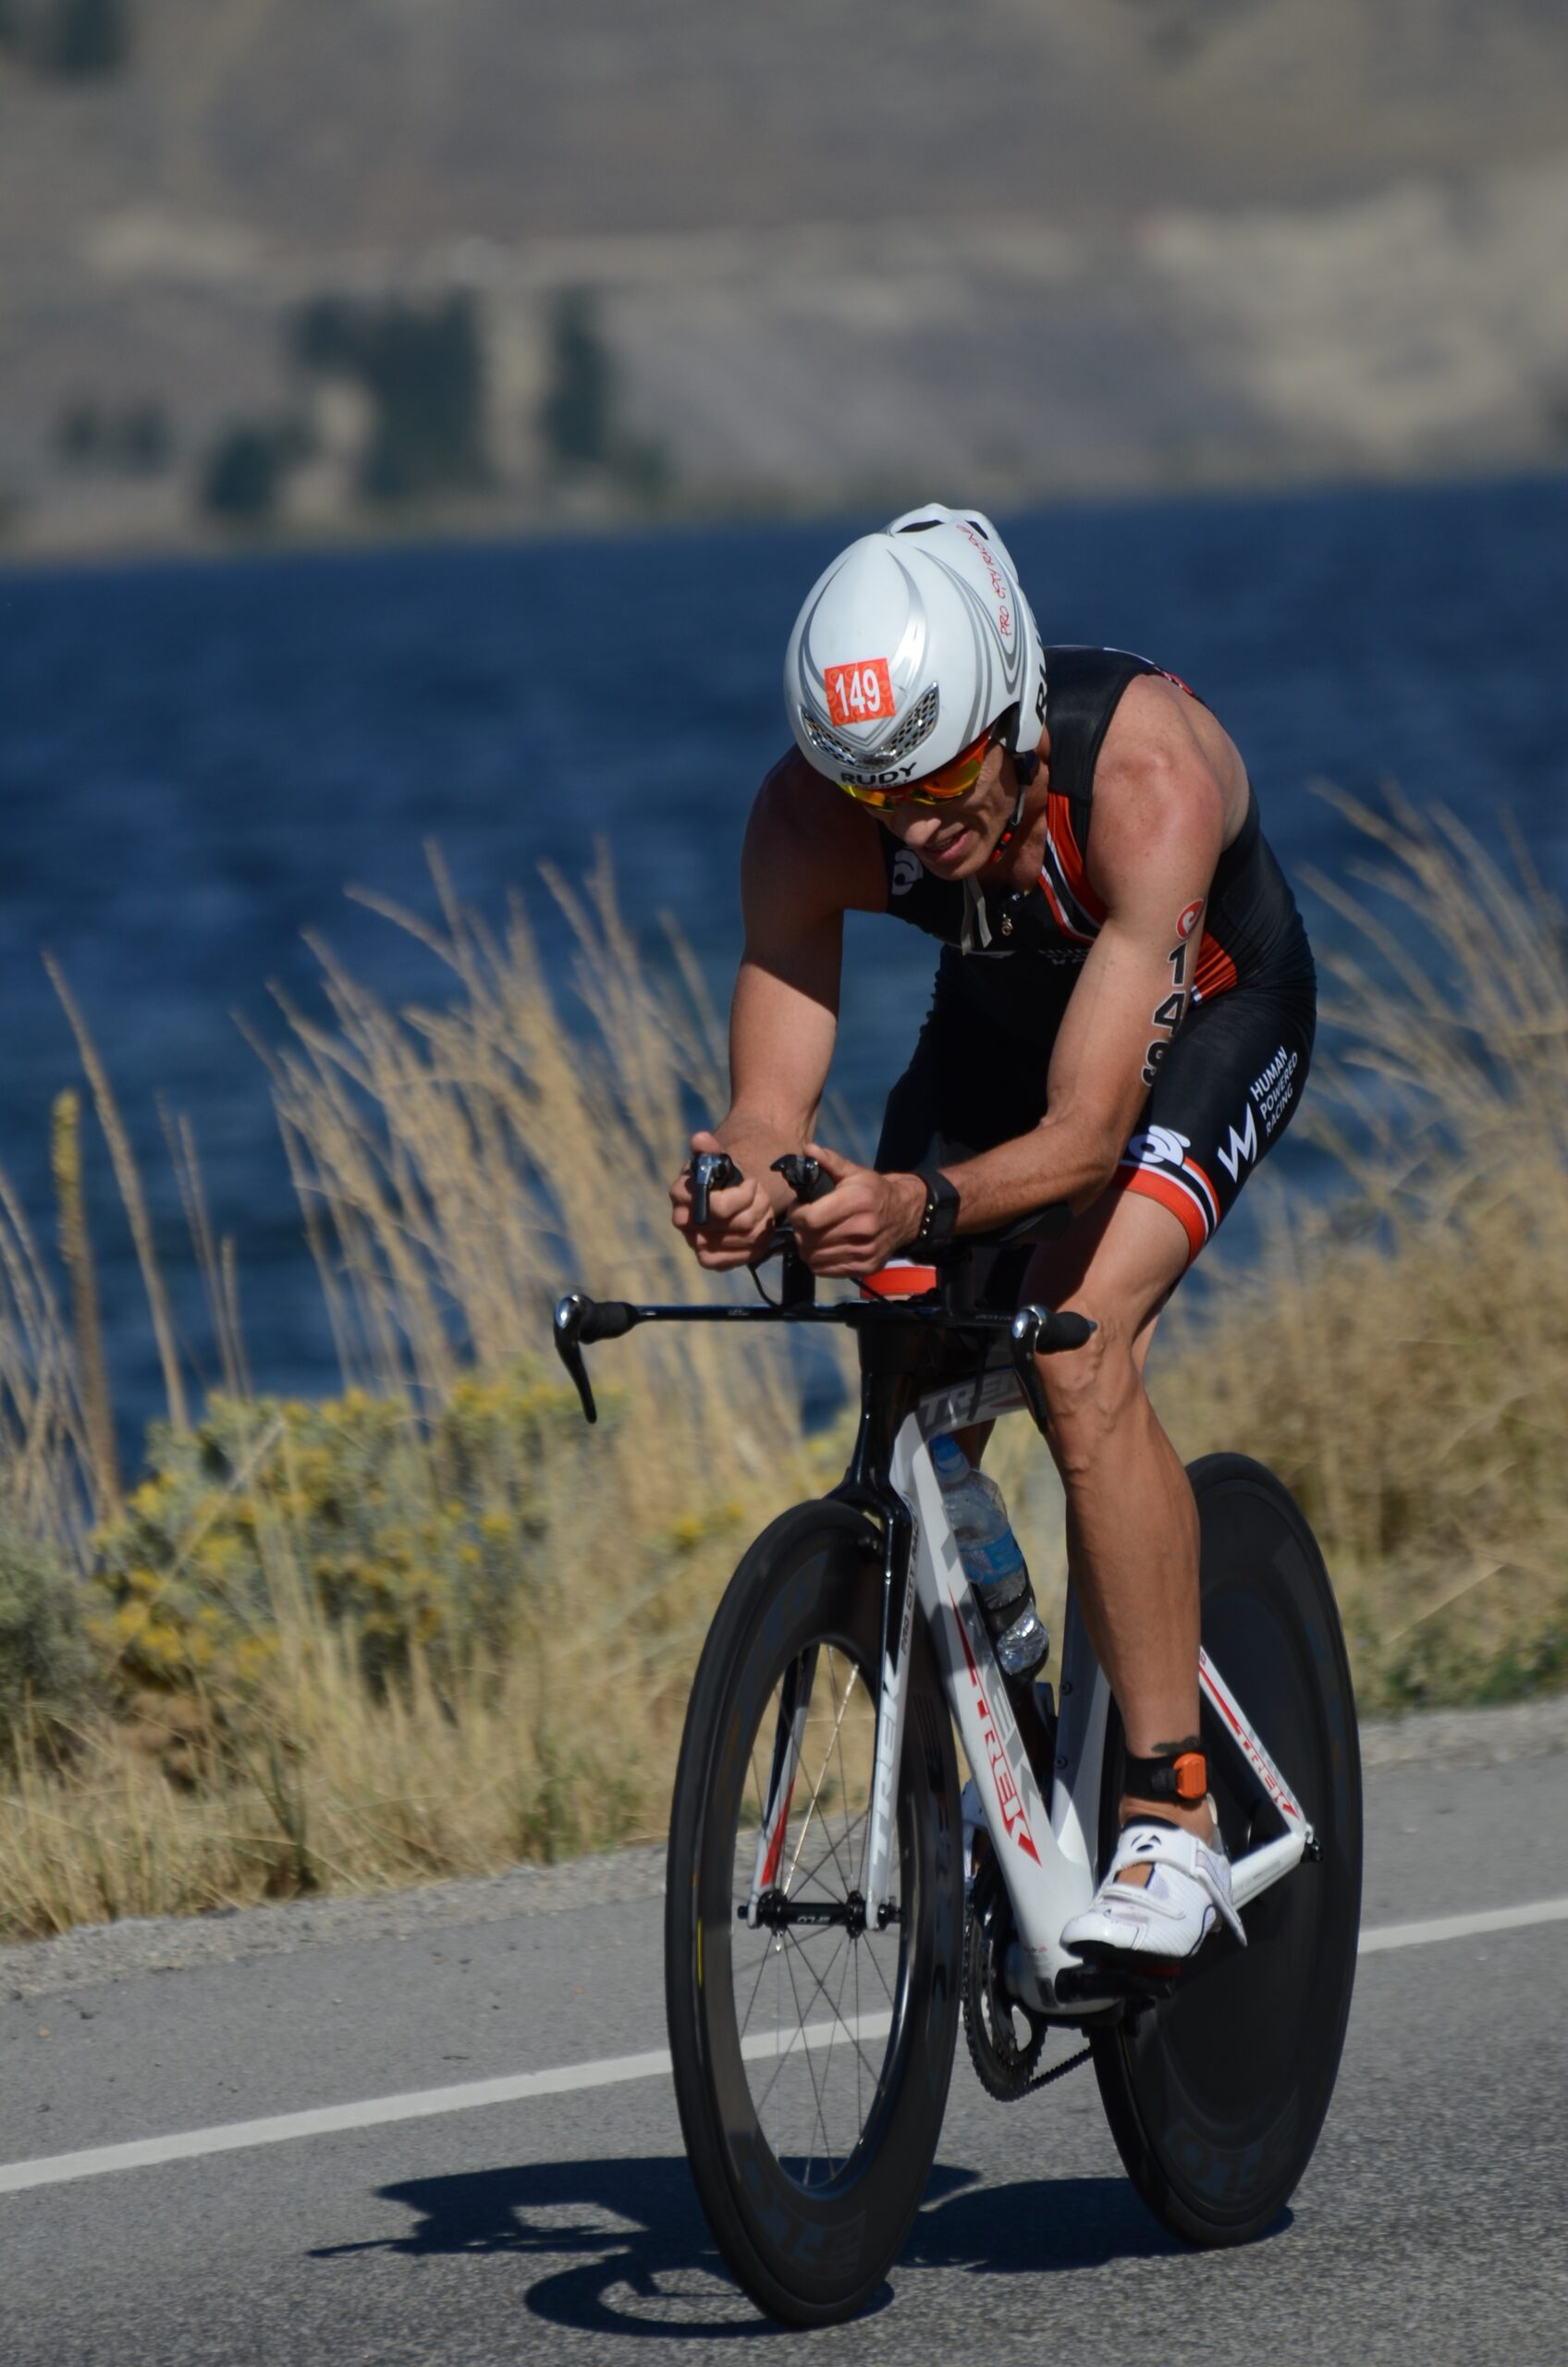 Mike Riding Time Trial Bike along Skaha Lake at Challenge Penticton